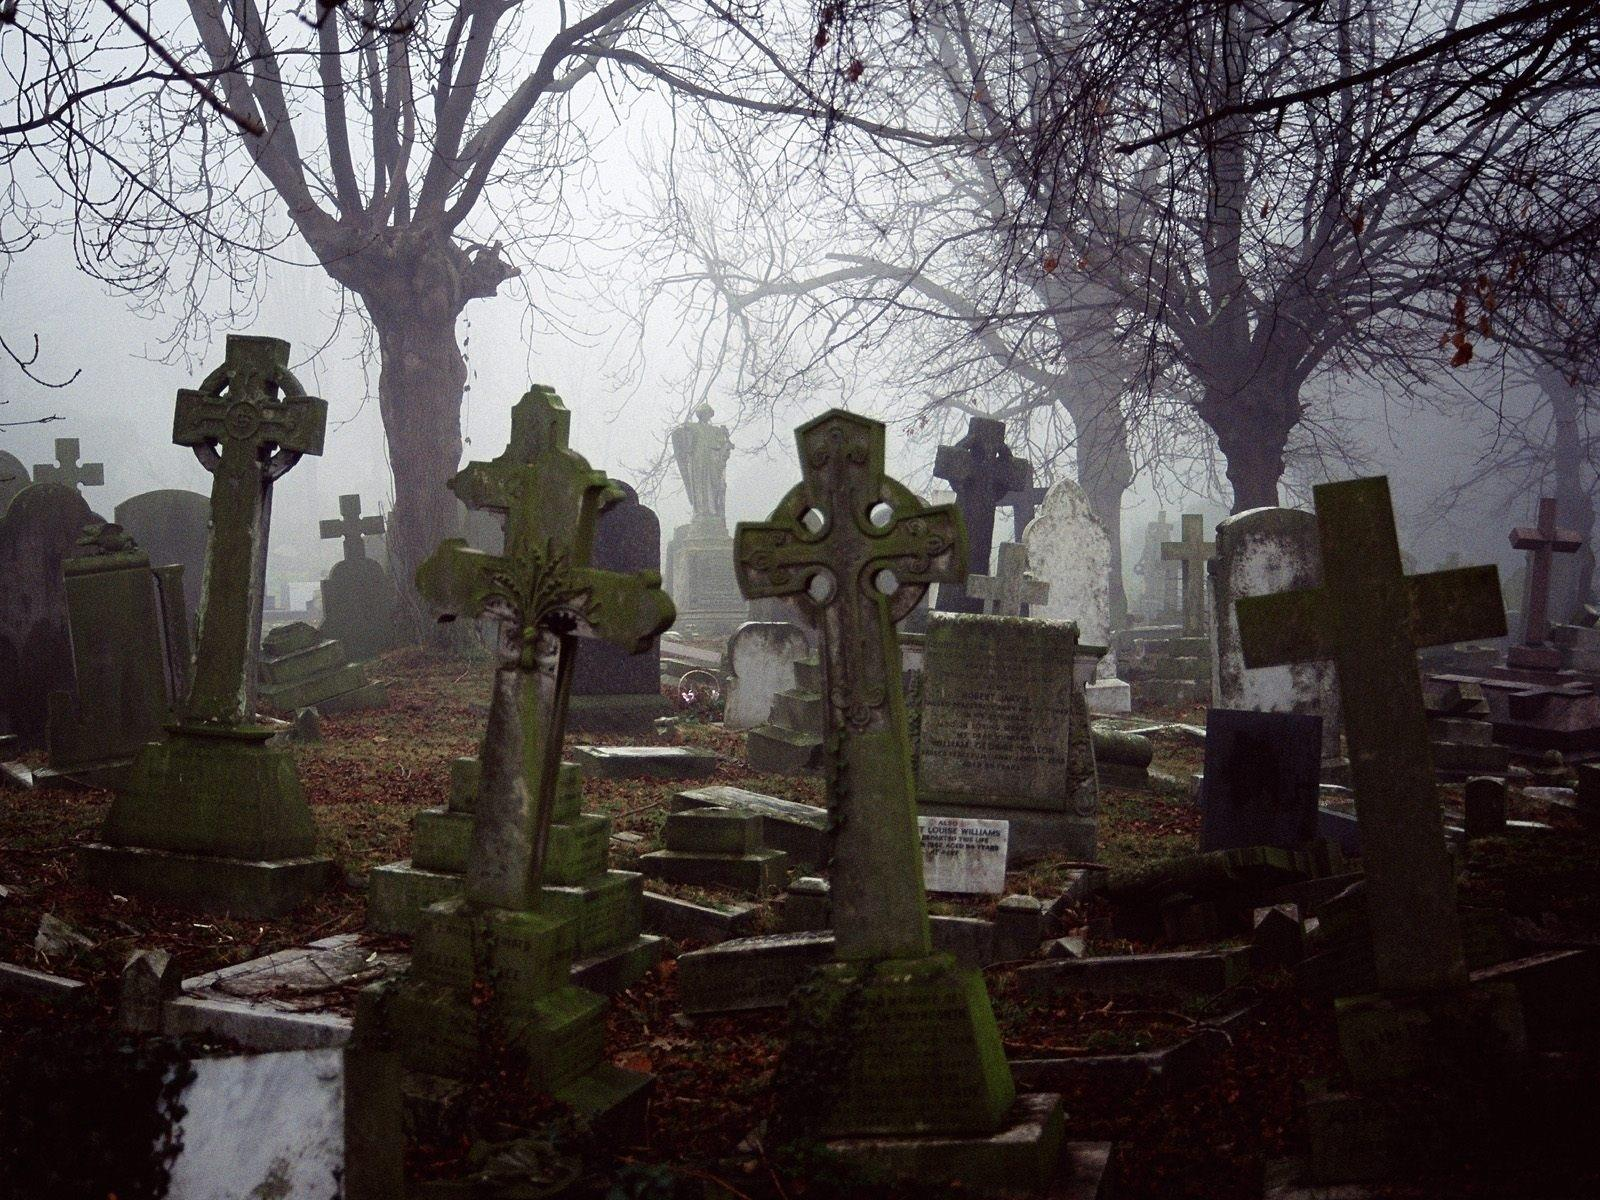 Cemetery wallpapers HD quality